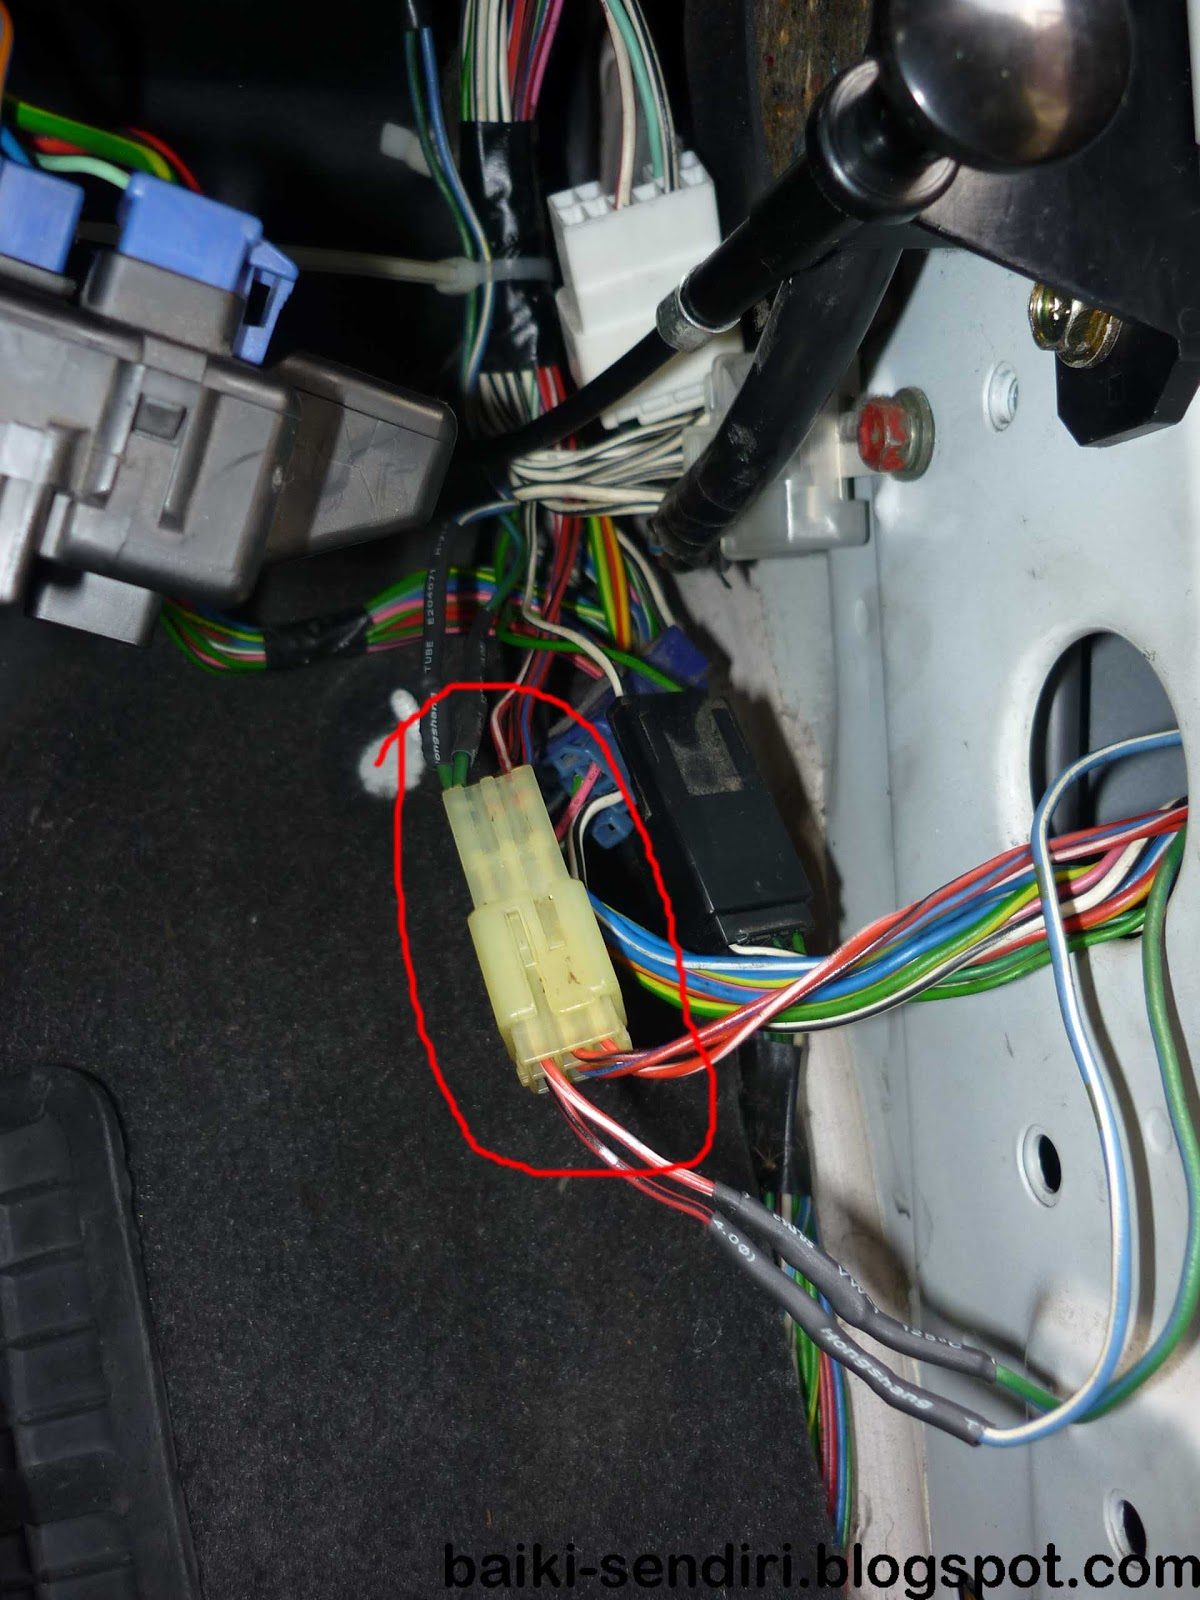 daihatsu coure perodua kelisa auto flip side mirror back rear circuit diagram wiring connection switch 5 diy fix on your own daihatsu l7 perodua kelisa autoflip perodua kancil wiring diagram at sewacar.co